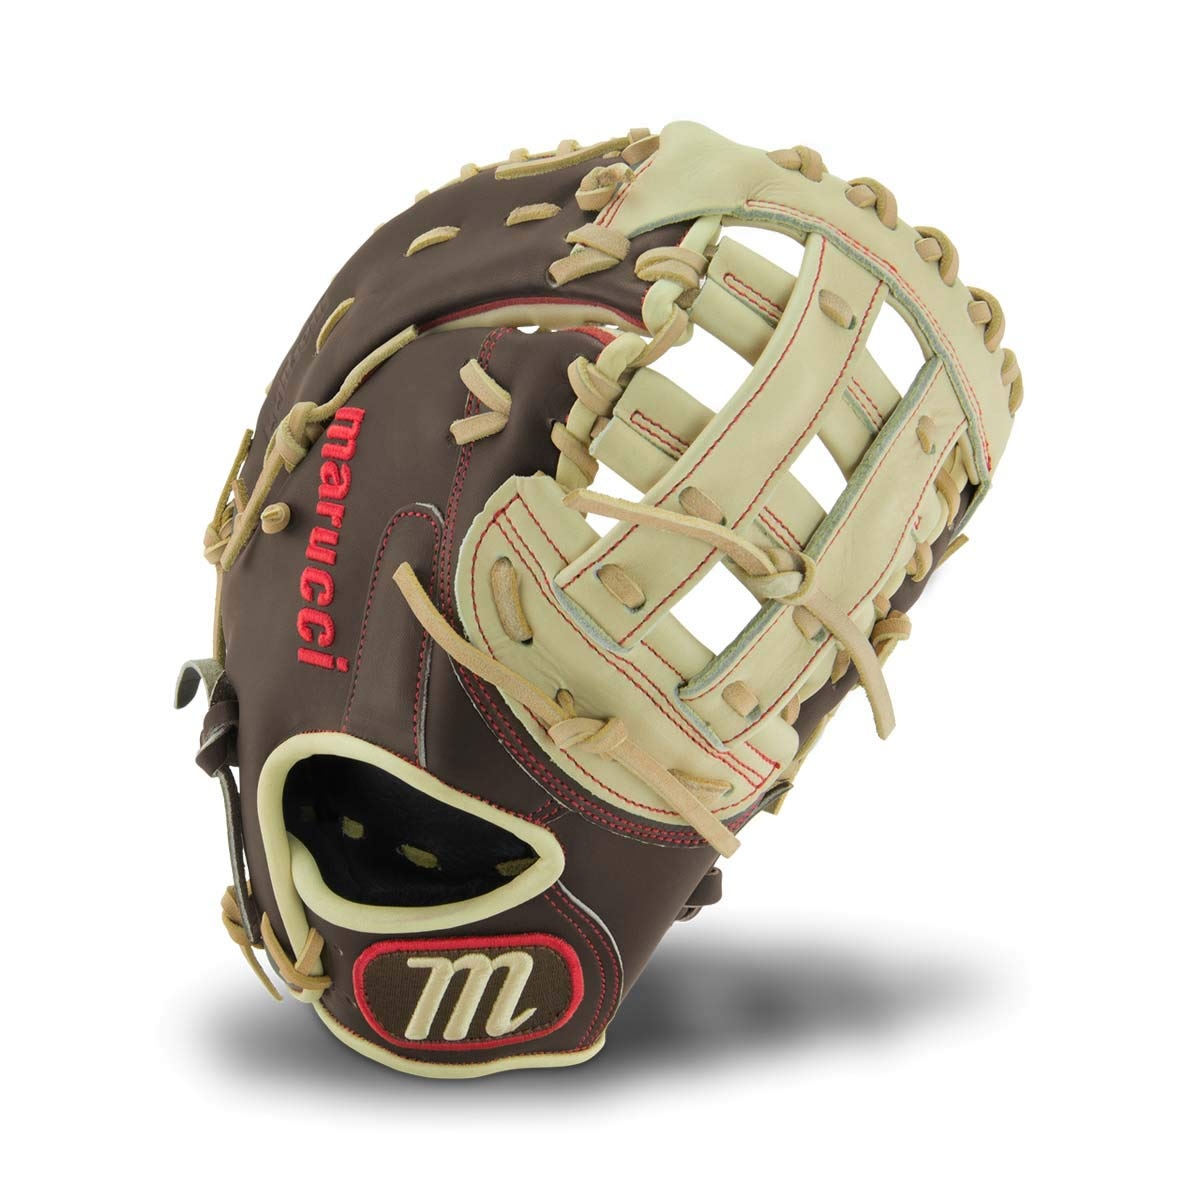 Marucci MFGBR125FB-GM/CM-RG BR450 Series Baseball Fielding Gloves, Gumbo/Camel, 12.5'' by Marucci (Image #1)